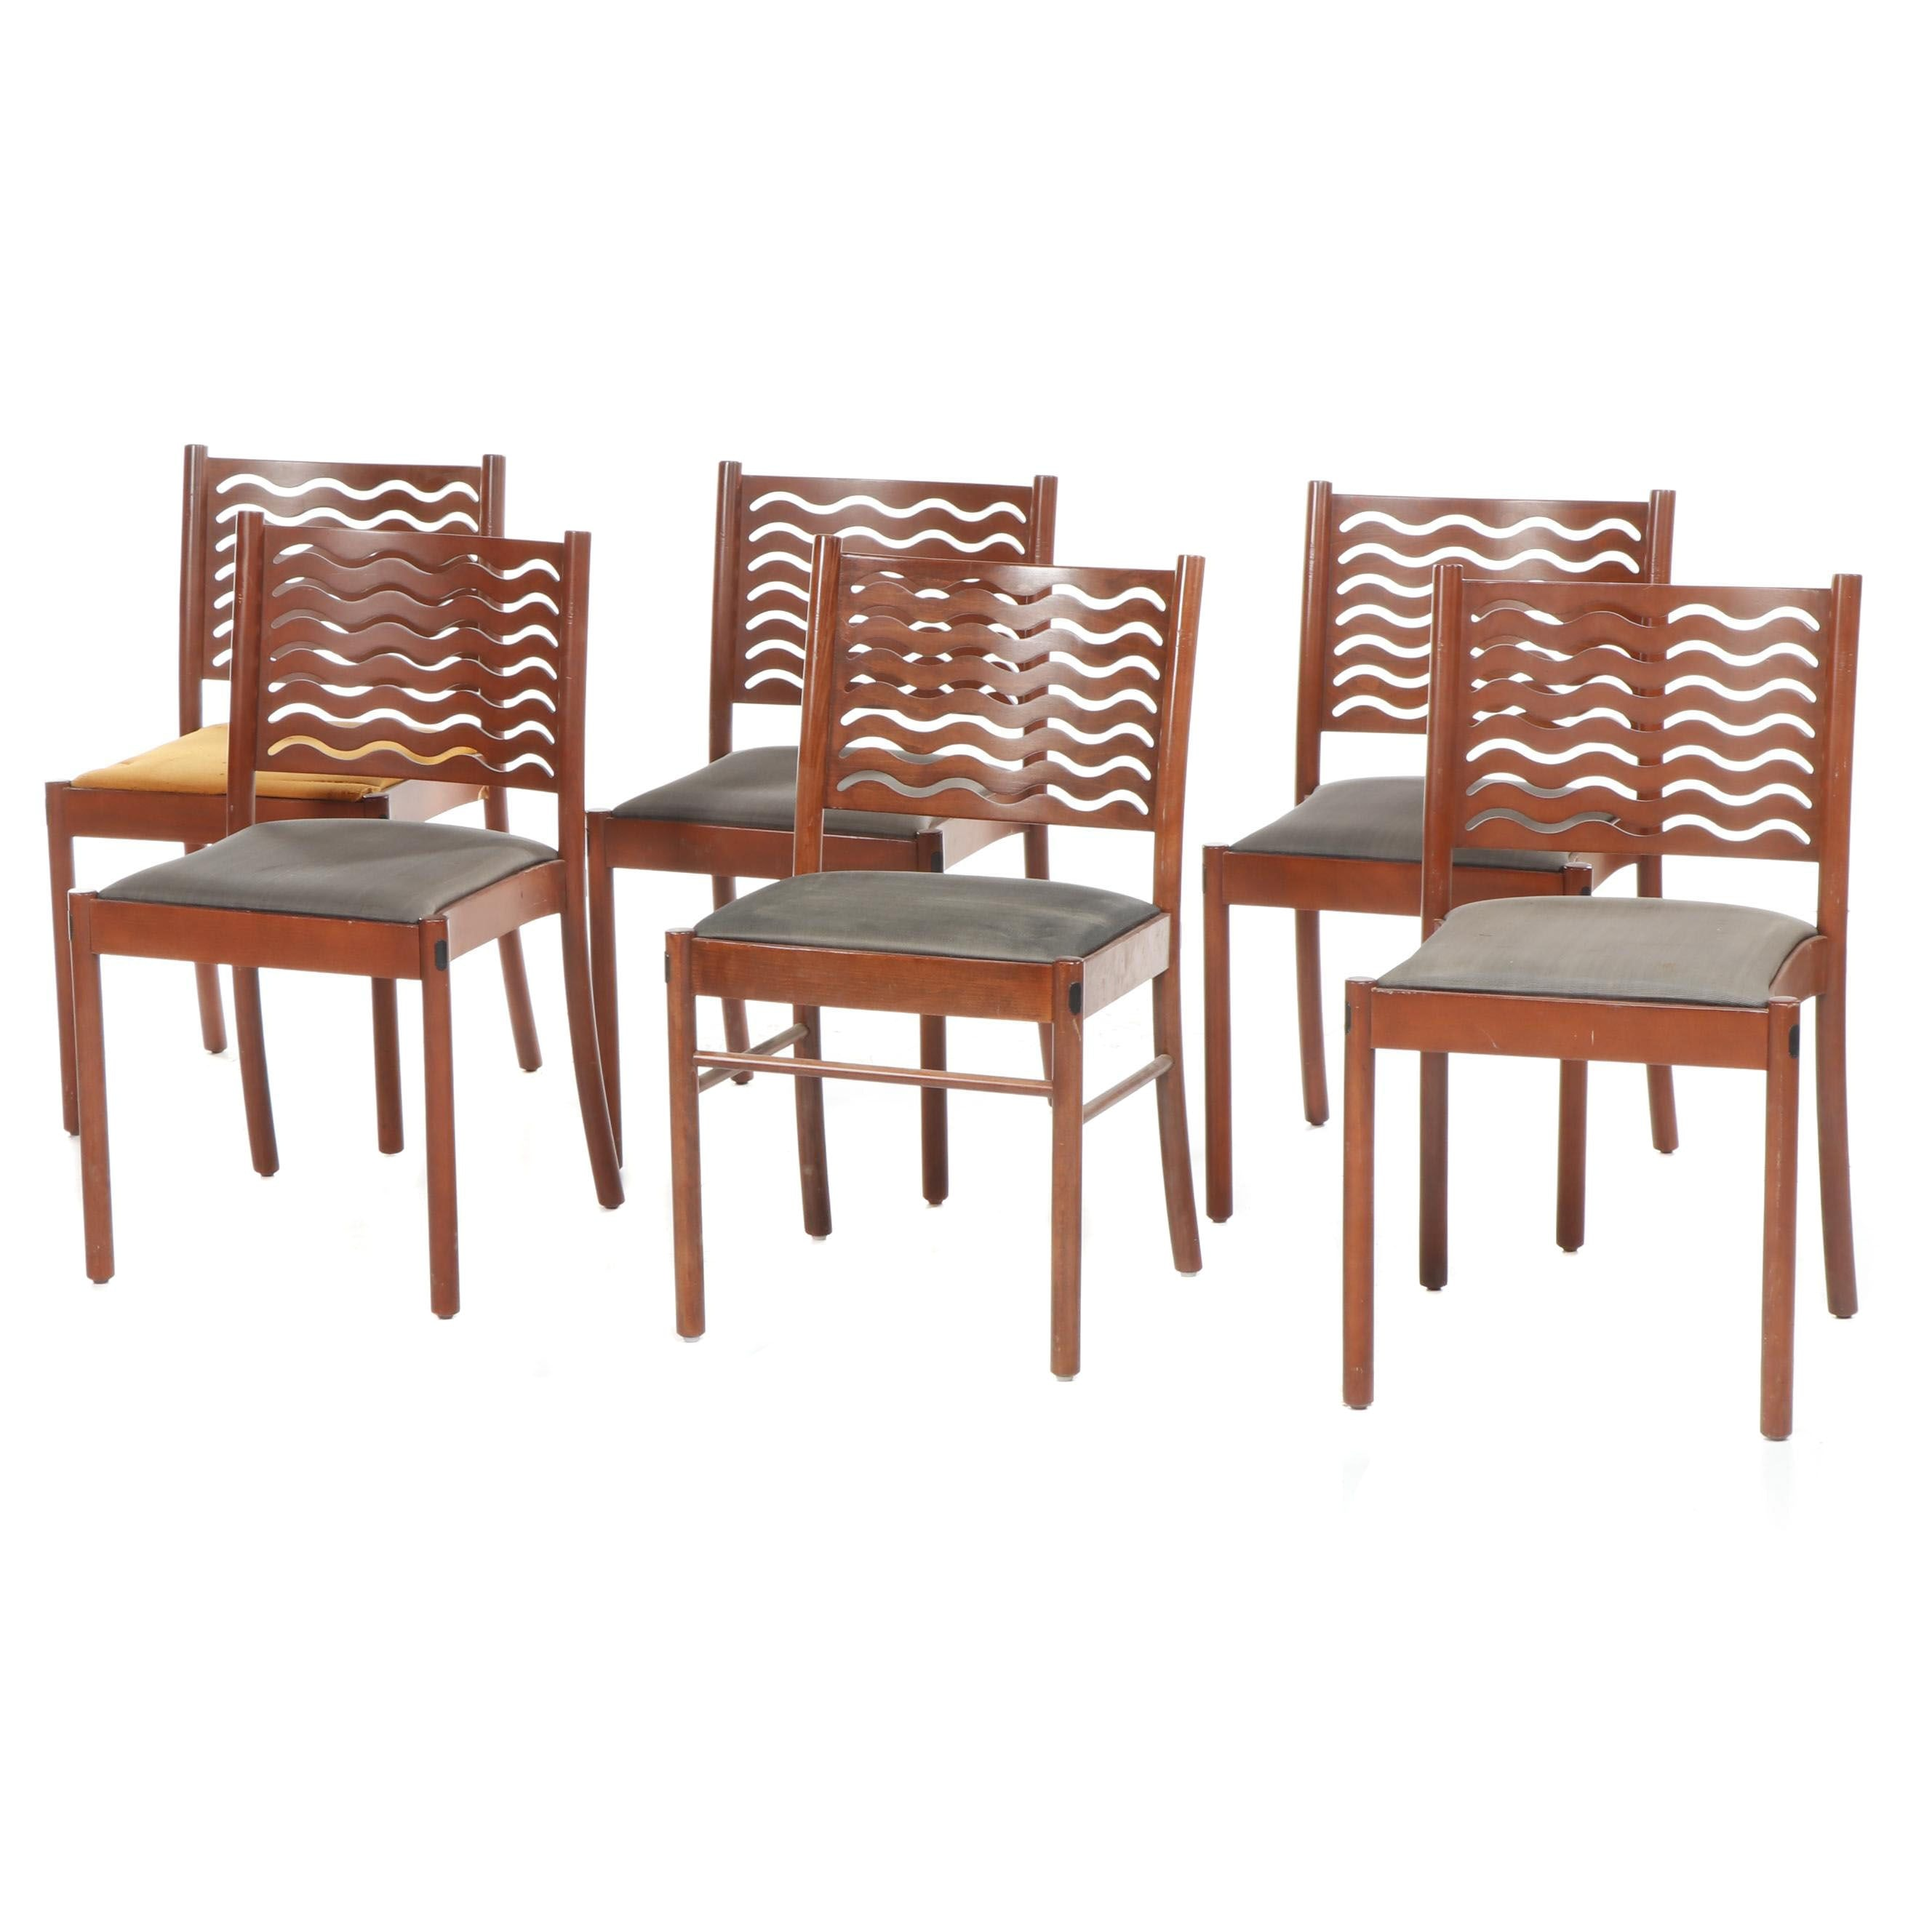 Six Modern Style Atelier International Wooden Side Chairs with Wave Pierced Back